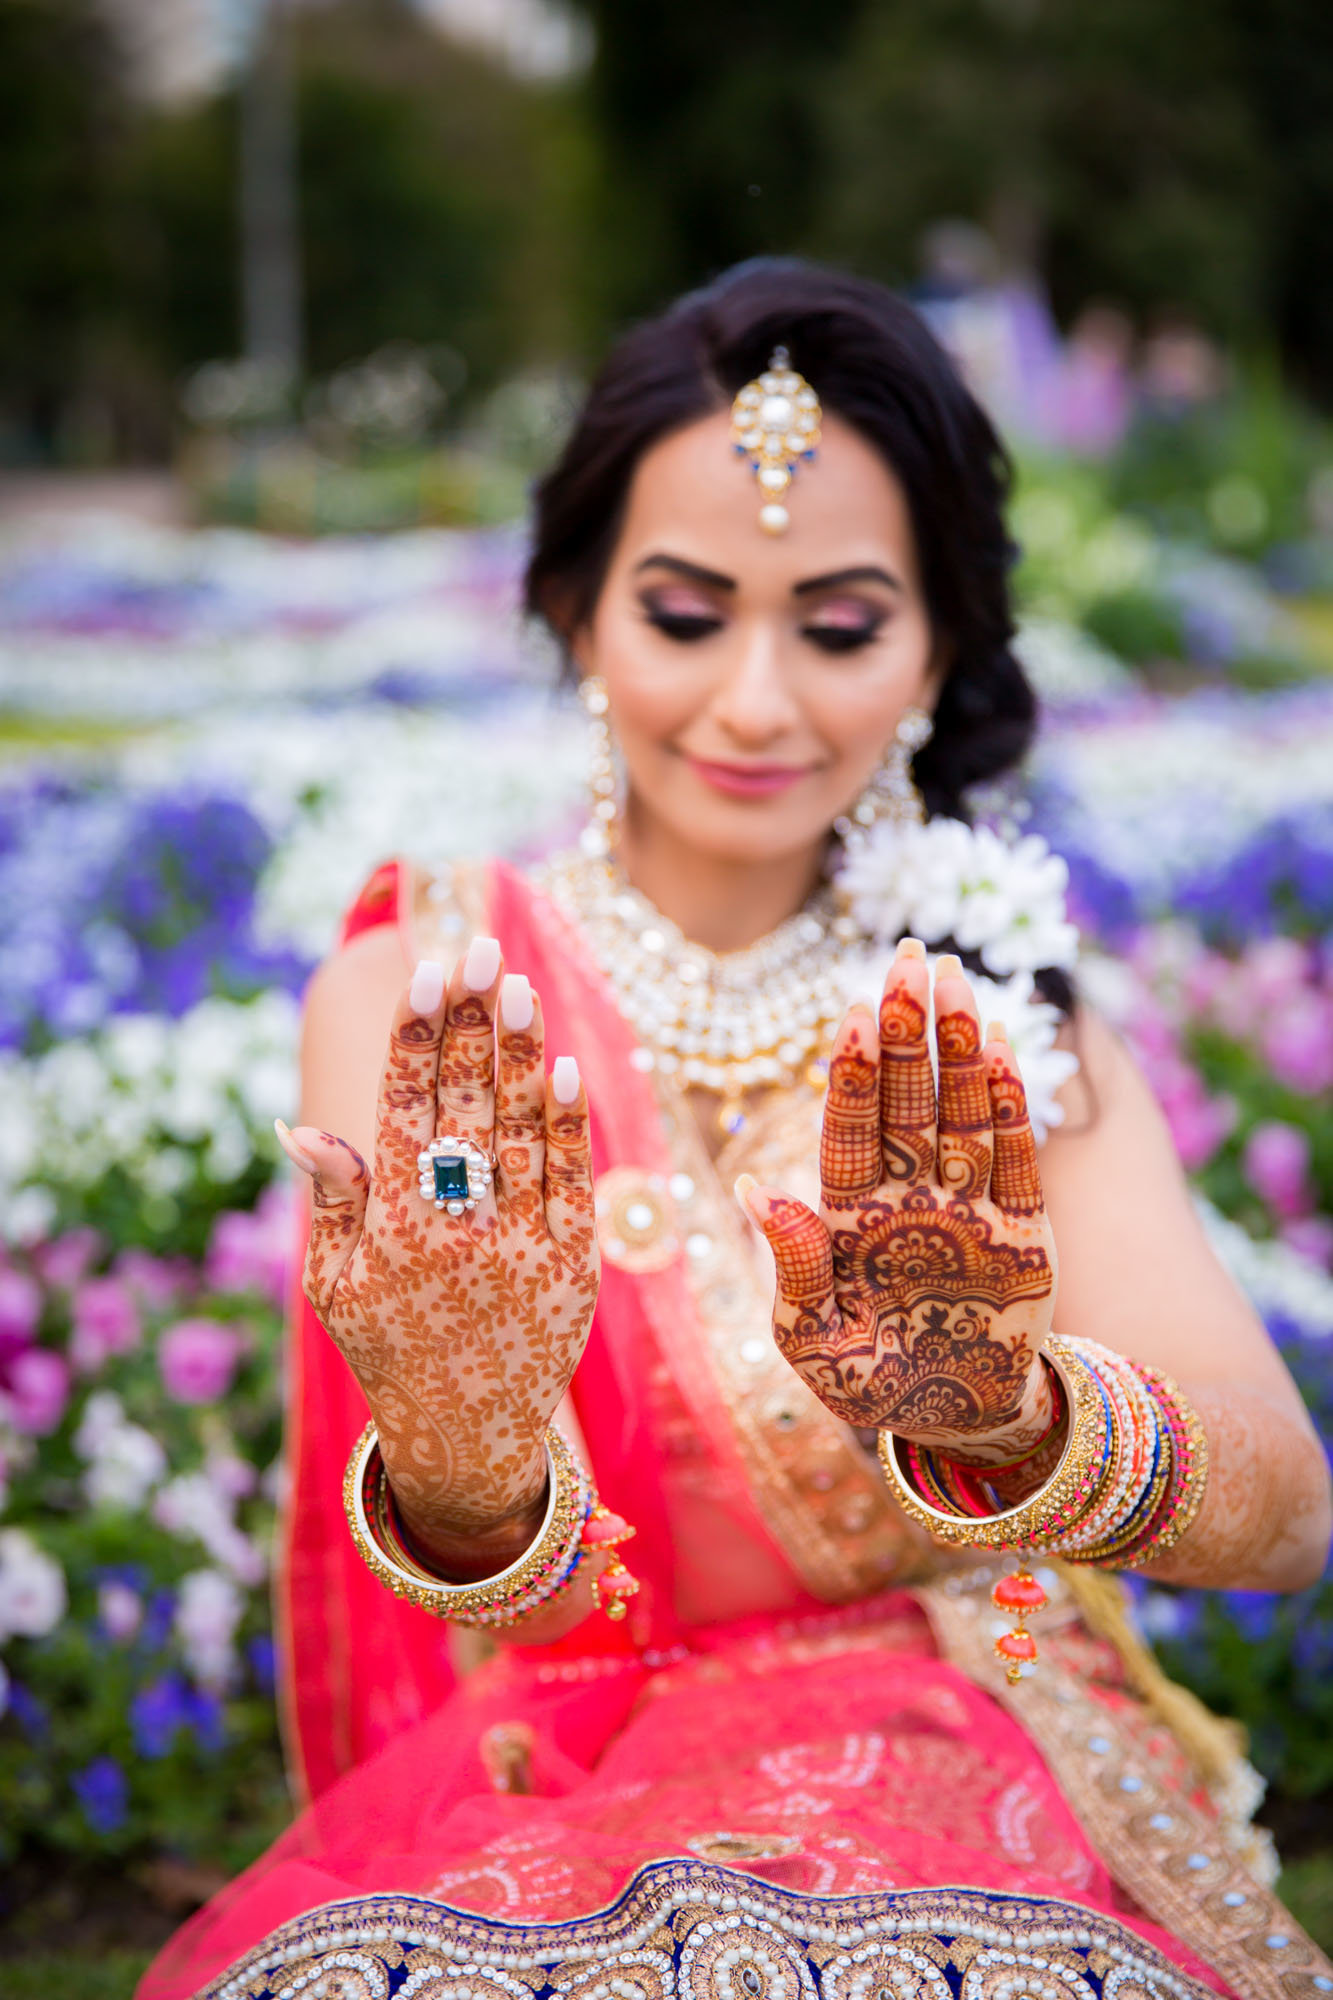 Manisha_Rohil_EngagementCeremony_CorsoNorthlakes_PhotographerAOsetroff_Highlights_Web-6